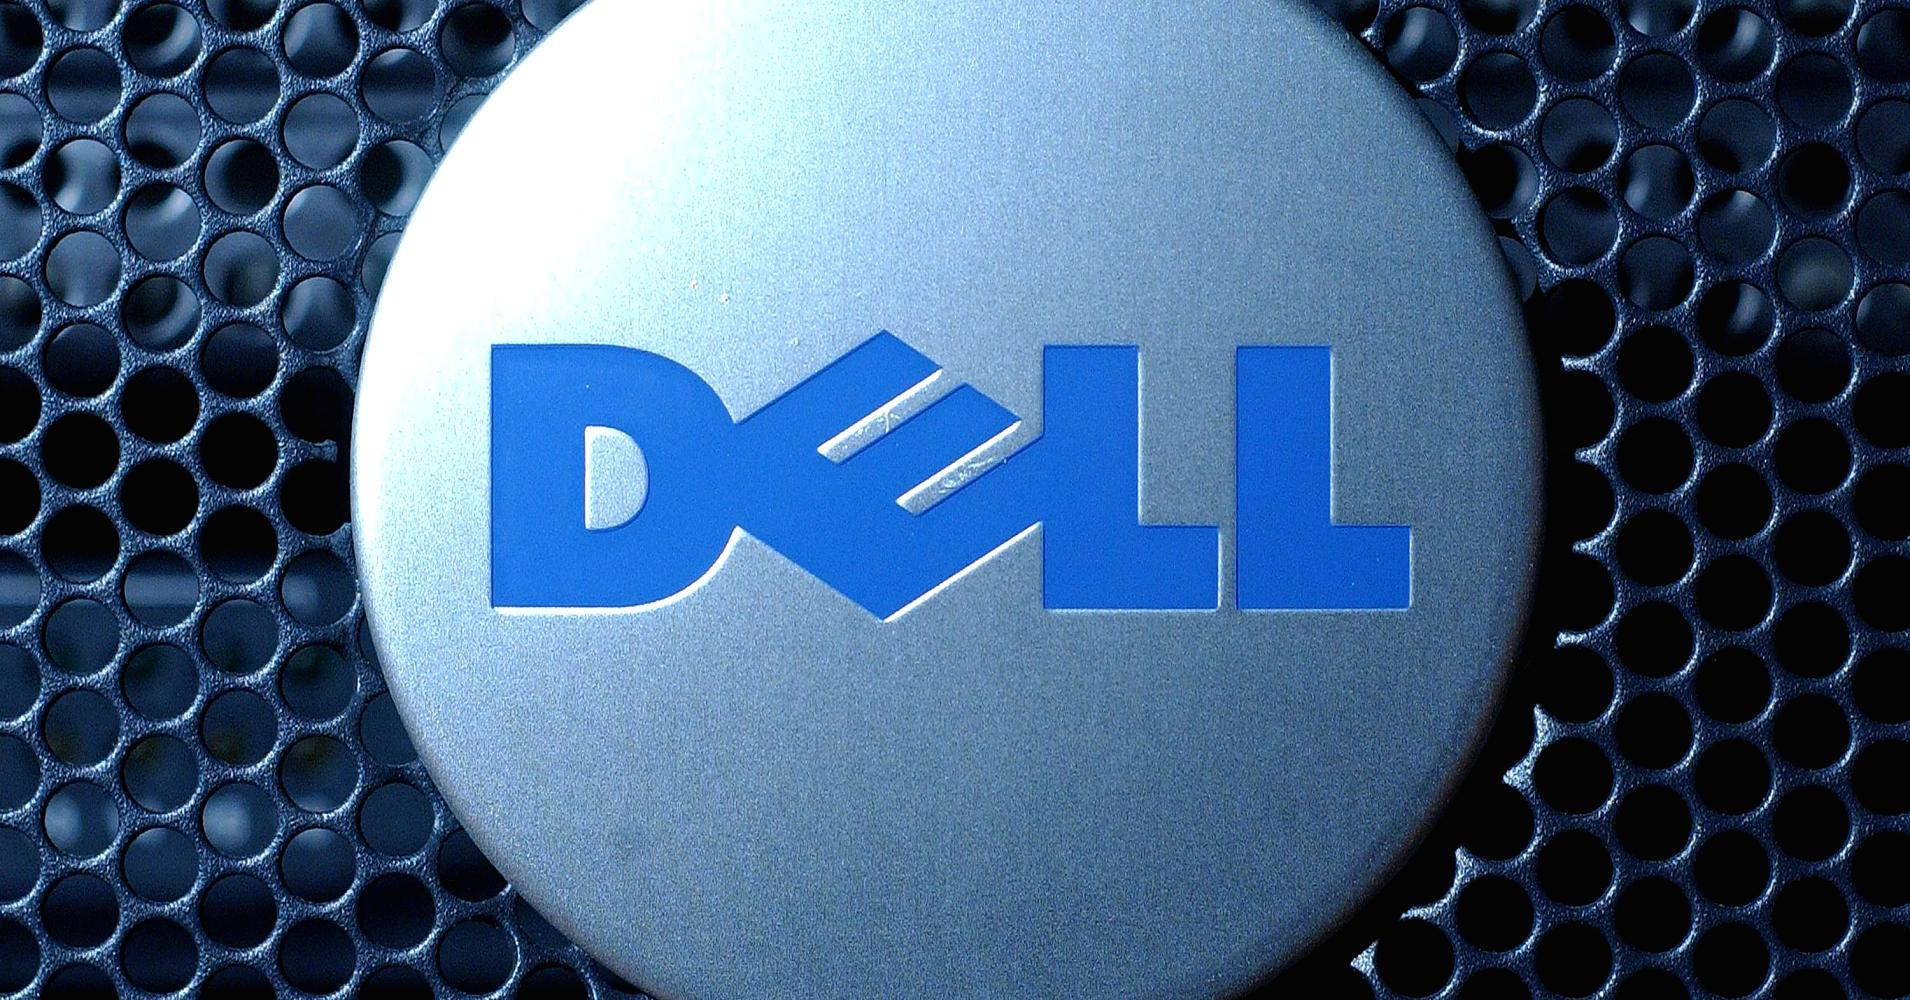 Dell offer for EMC more than $27 a share: Sources